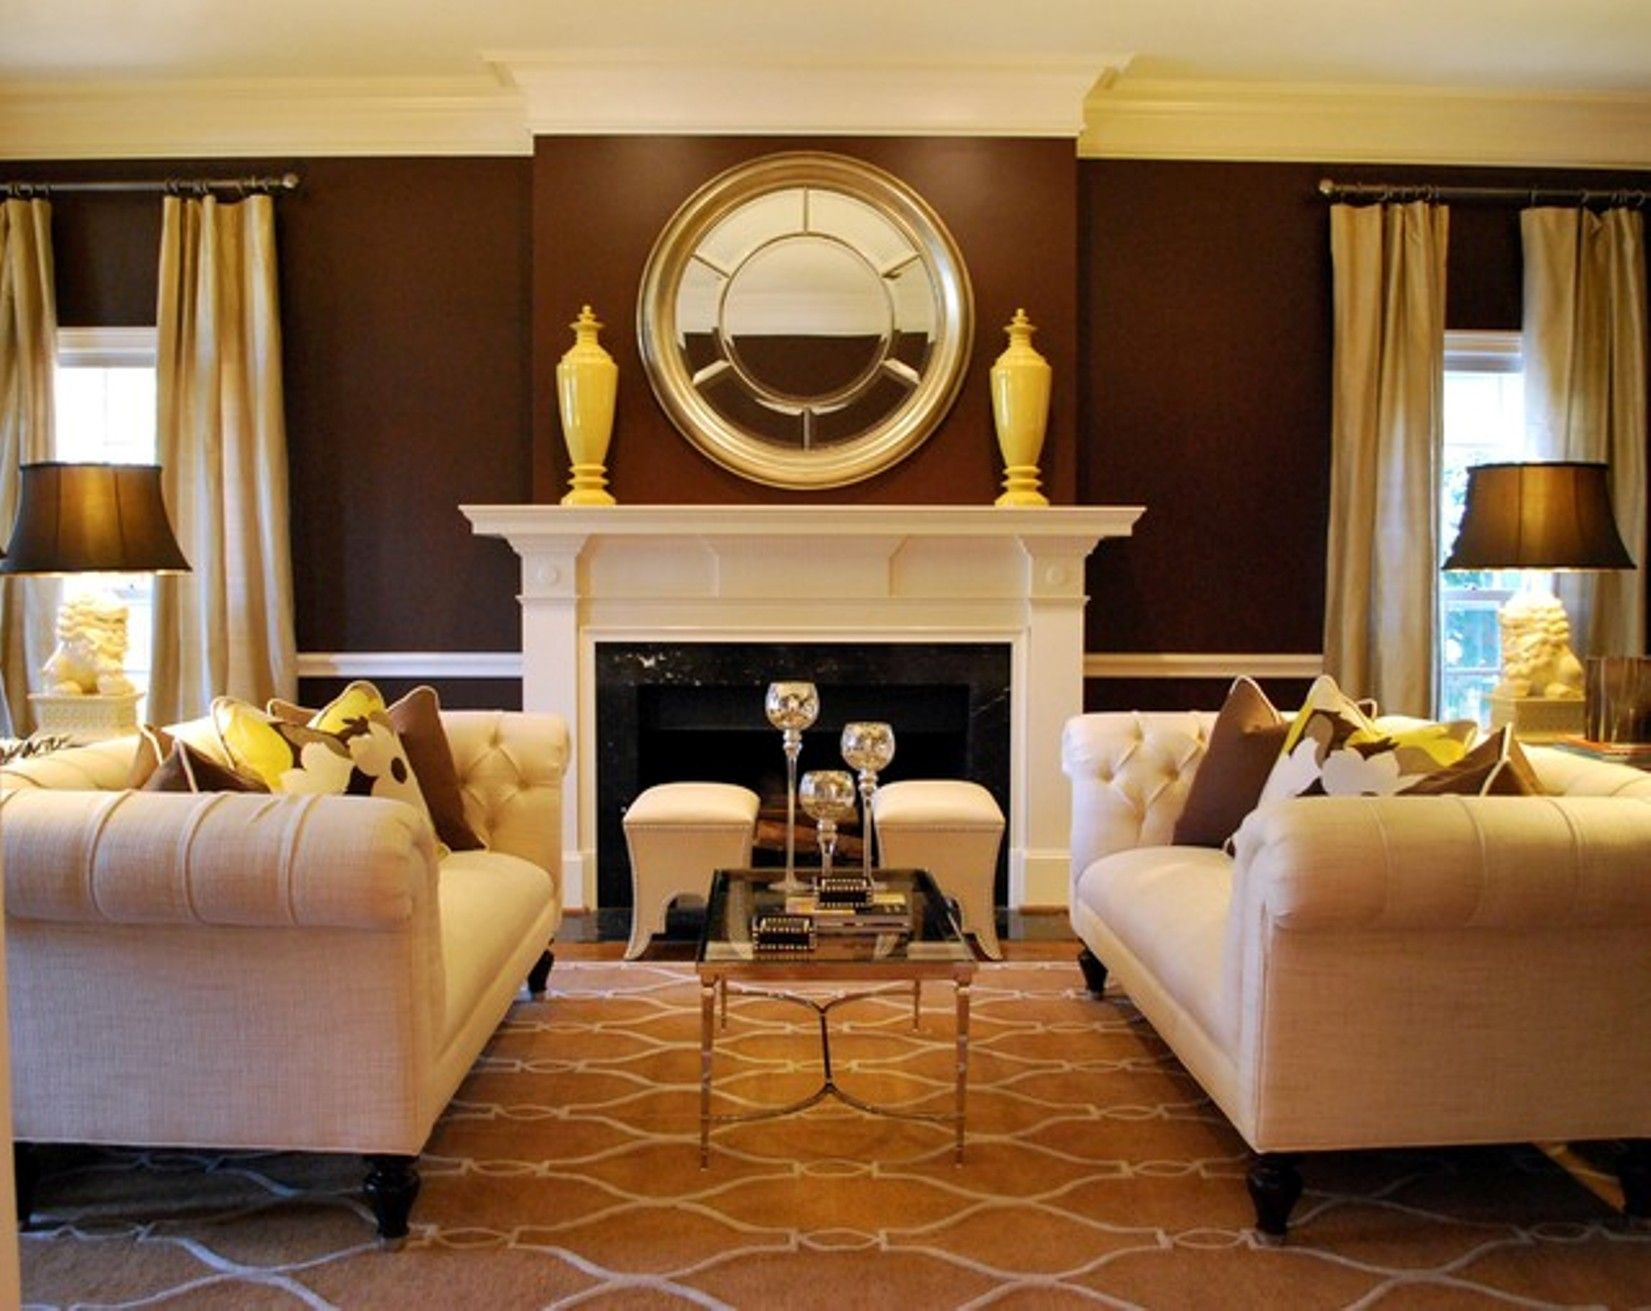 Warm Colors Two Sofas Pattern Rug Ottomans Symetrical Transitional Style Formal Living Rooms Transitional Living Rooms Brown Living Room #warm #traditional #living #room